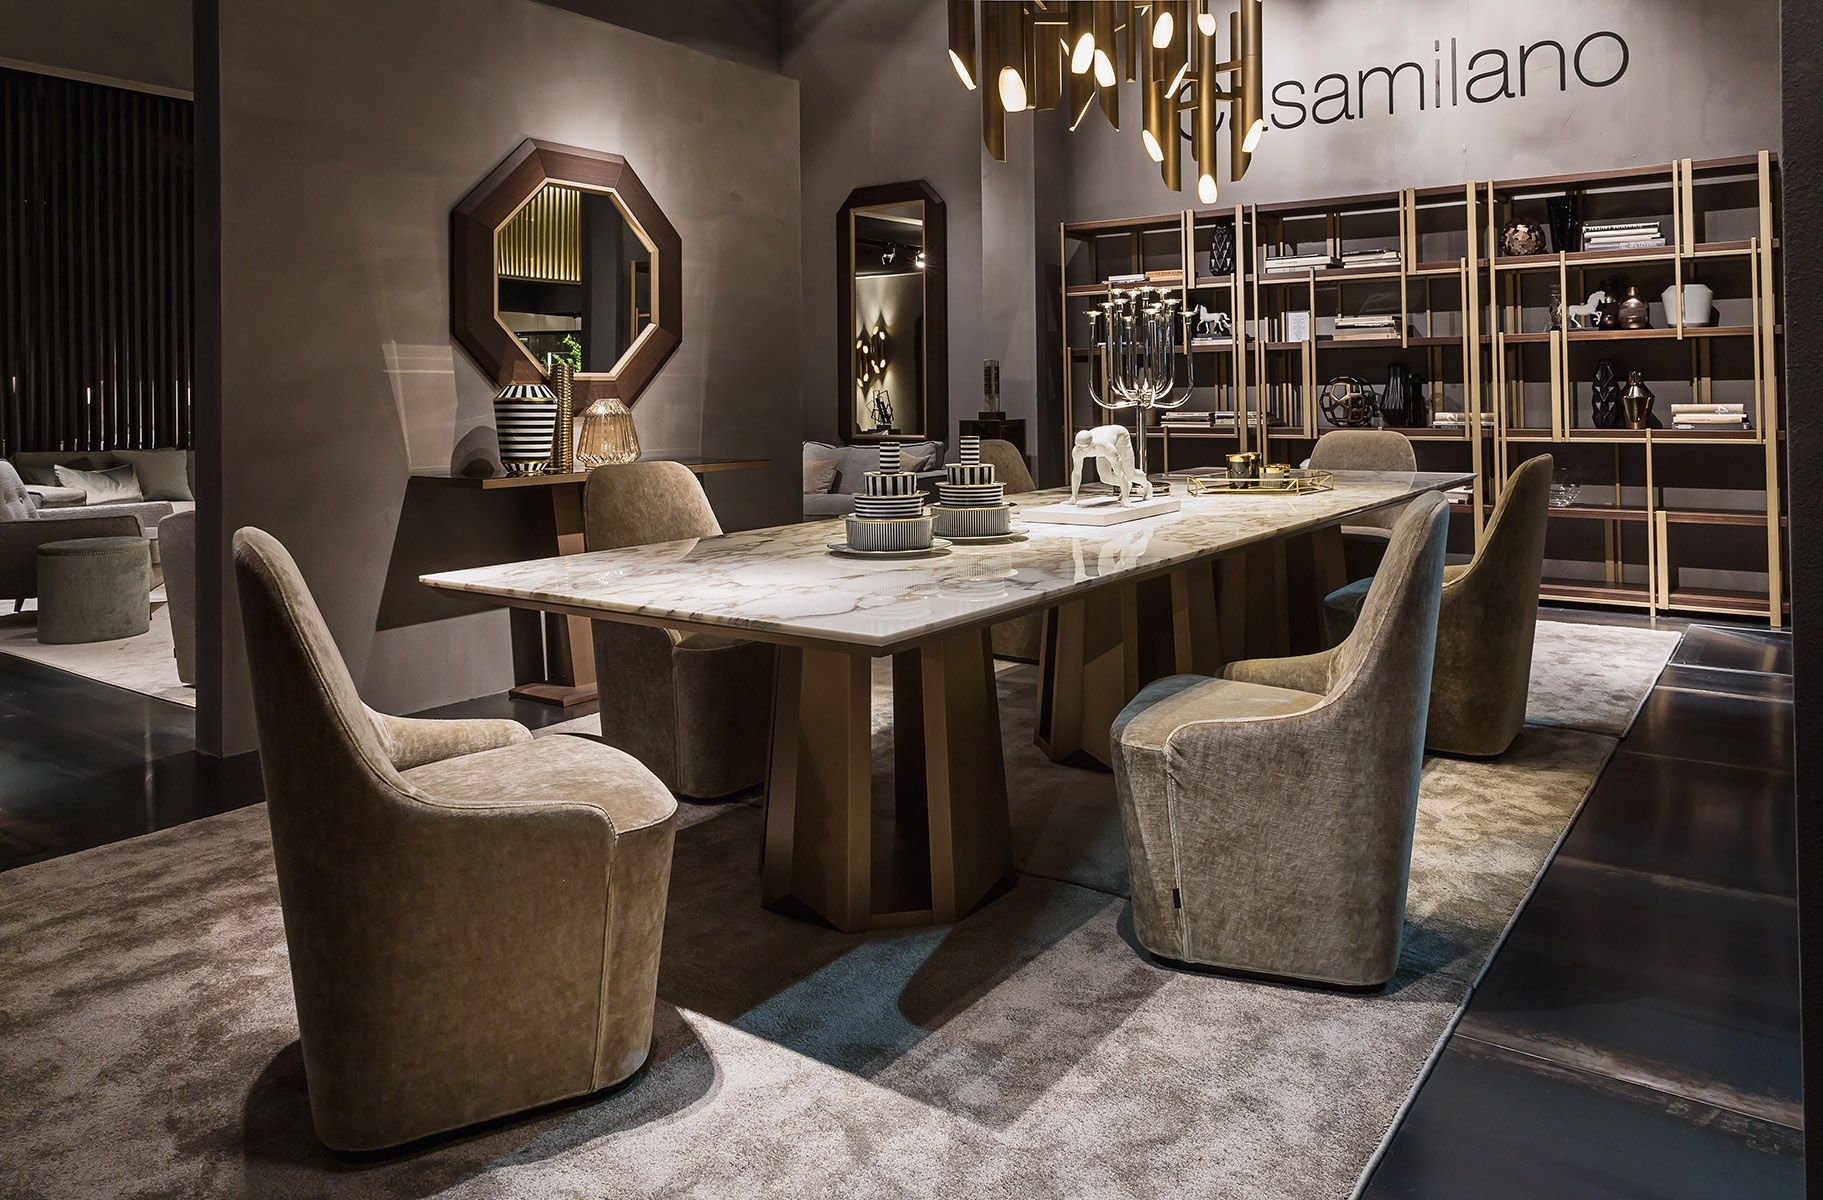 KANDINSKY table by Massimiliano Raggi for Casamilano home collection 2016. Available in different sizes and with different tops (wood / marble). #casamilano #kandinsky #massimilianoraggi #newcolelction #homecollection